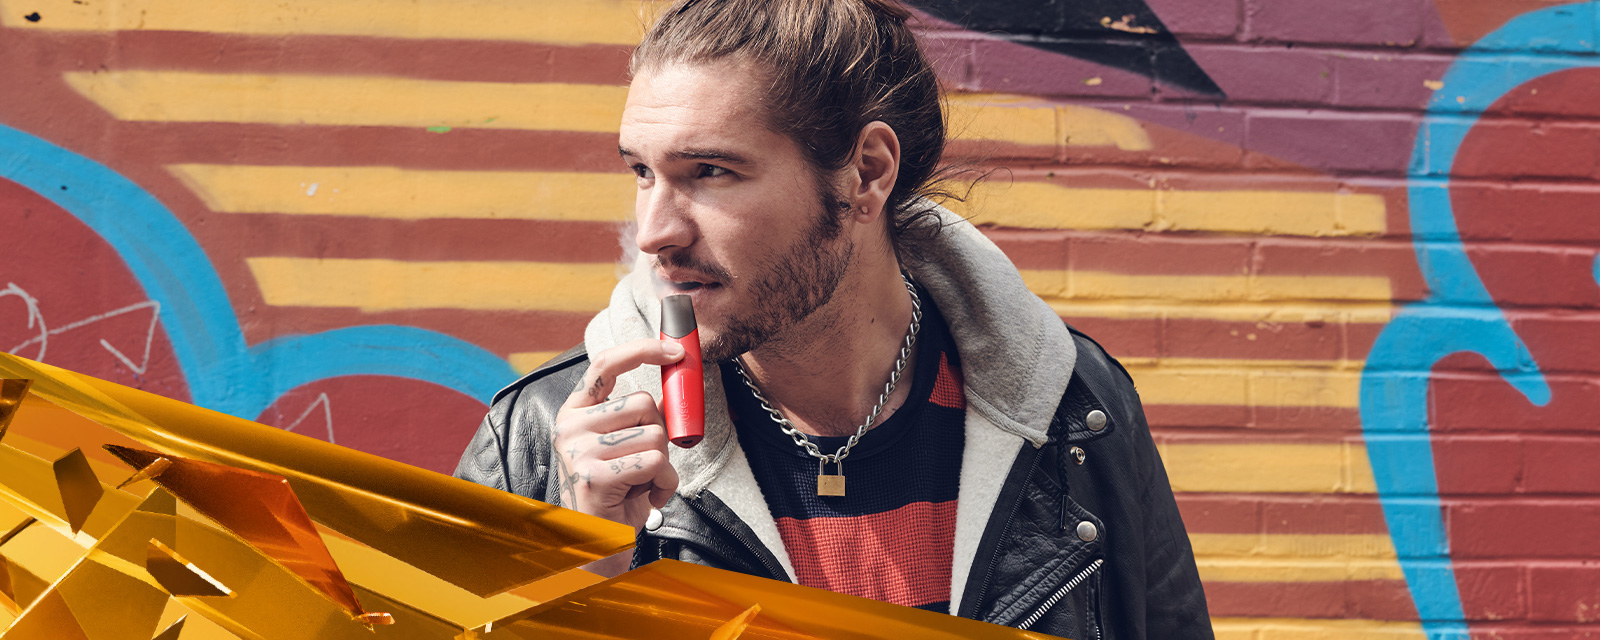 8 Reasons to Switch to E-cigarettes